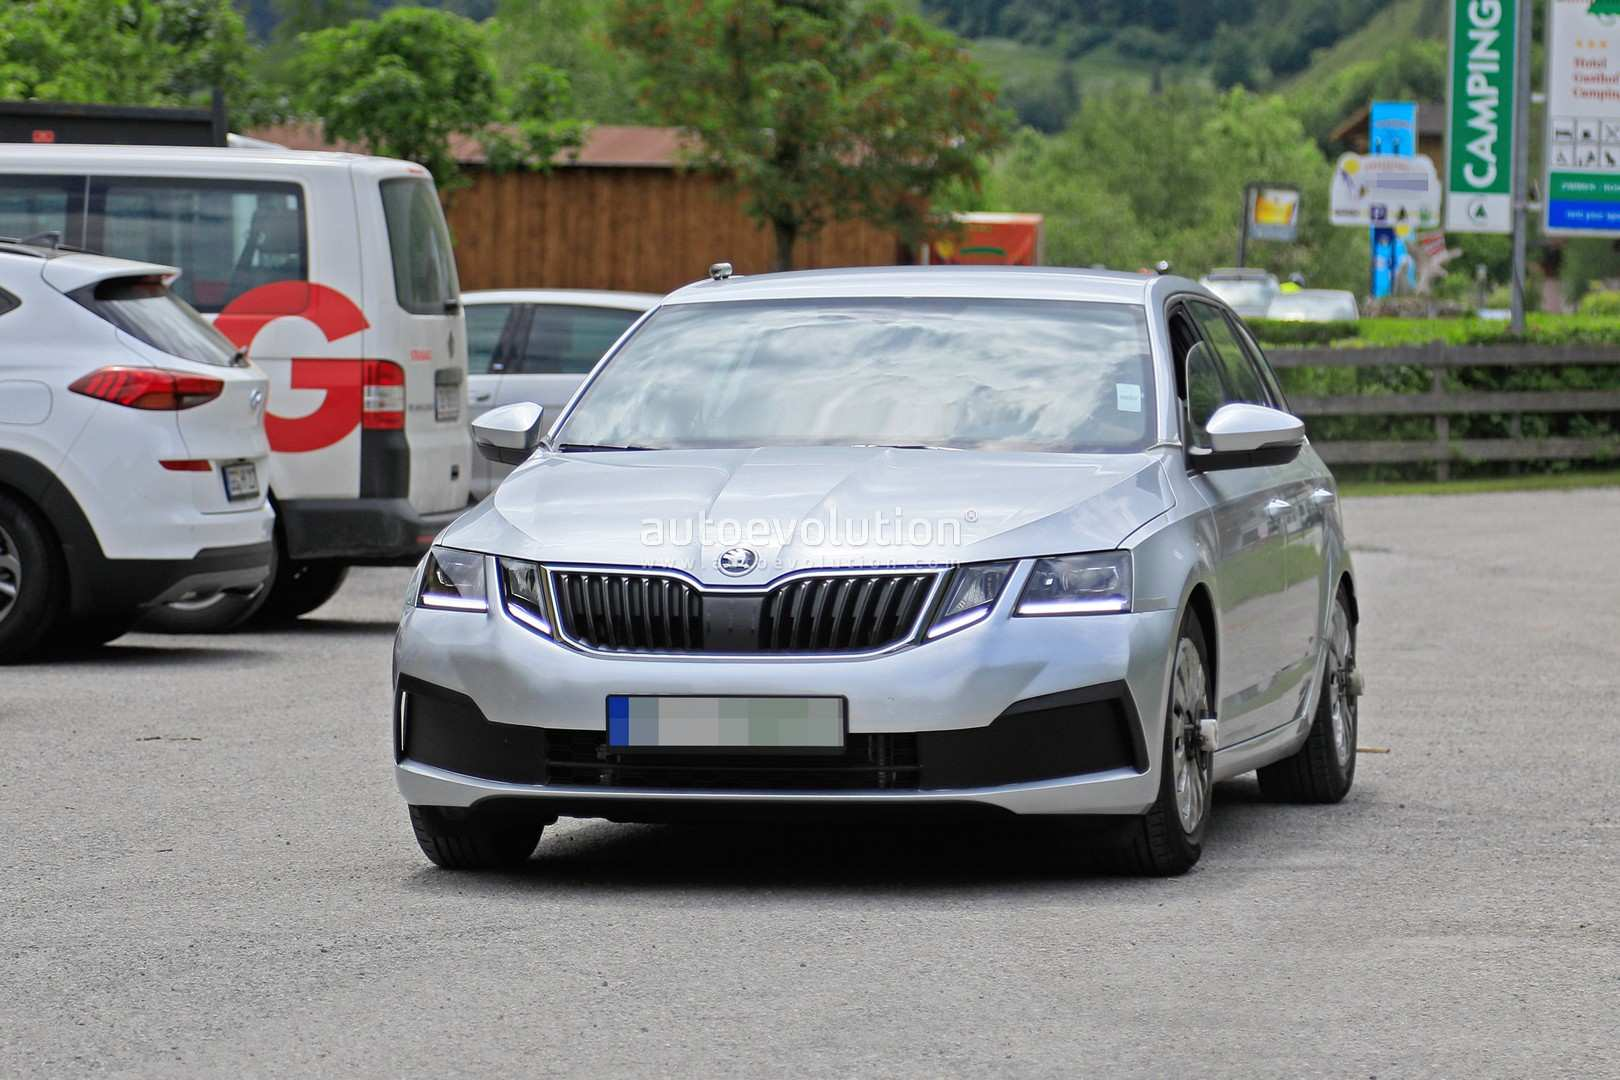 2020 The Spy Shots Skoda Superb Price and Review